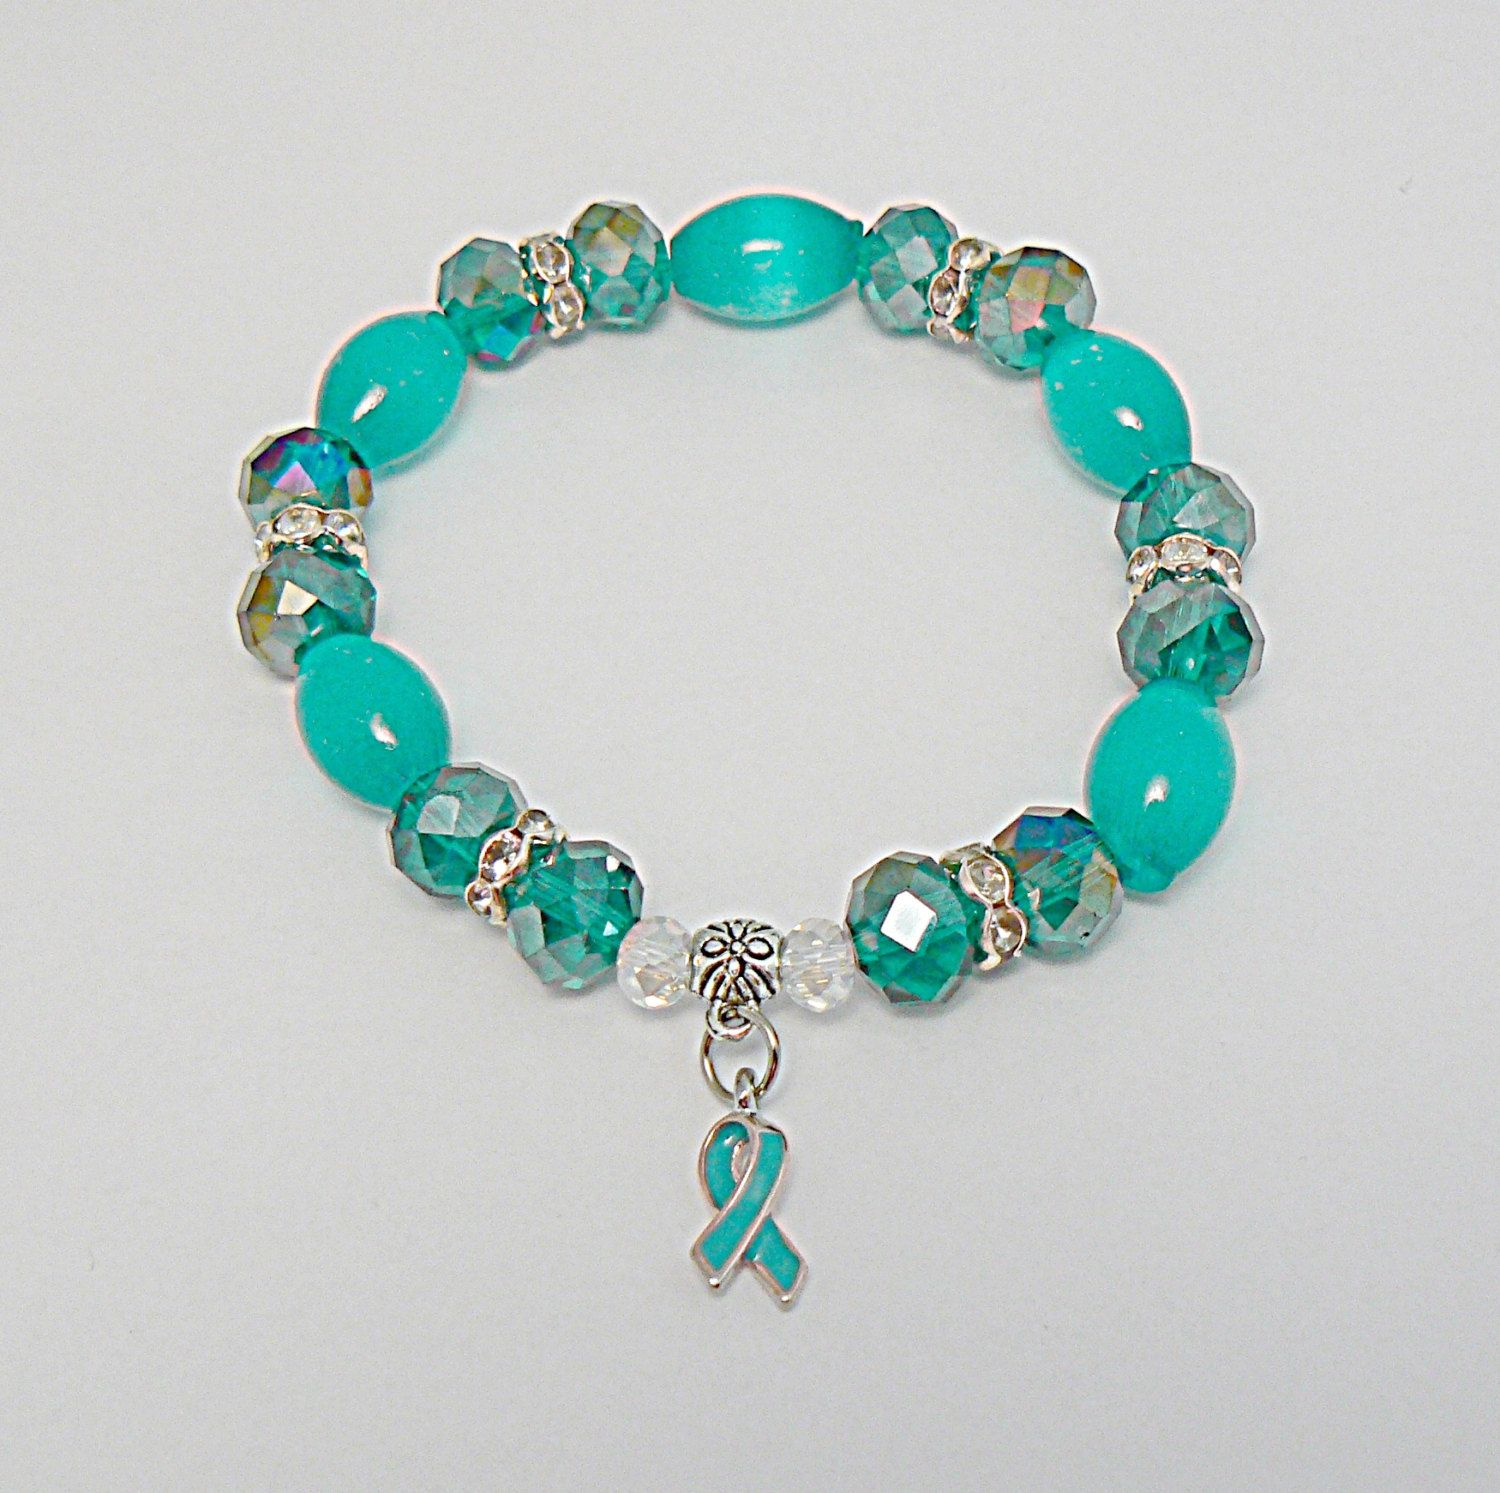 ovarian bracelet pos polycystic disease fragile scleroderma kidney ocd bullying x anti awareness pin cancer